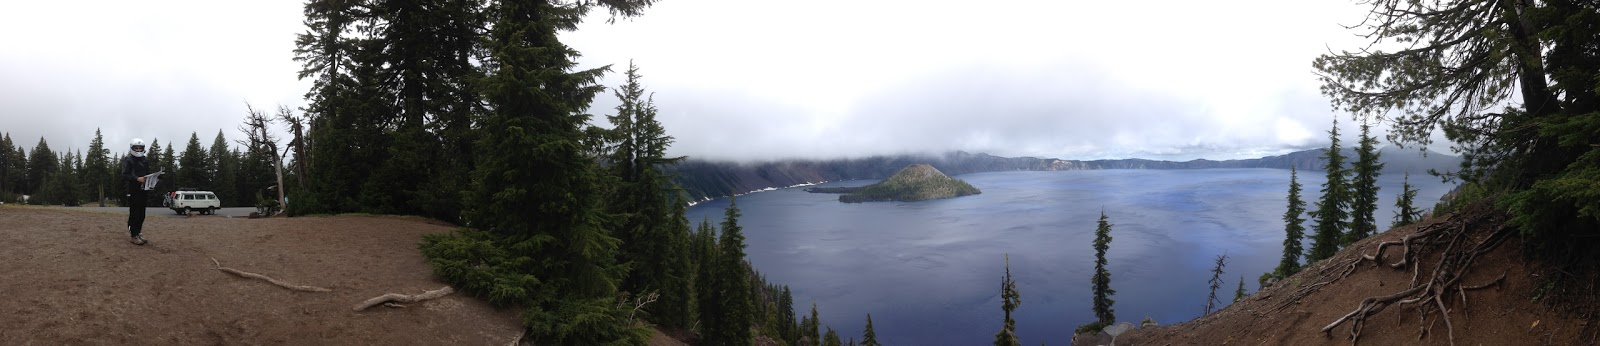 360 degree panorama Crater Lake